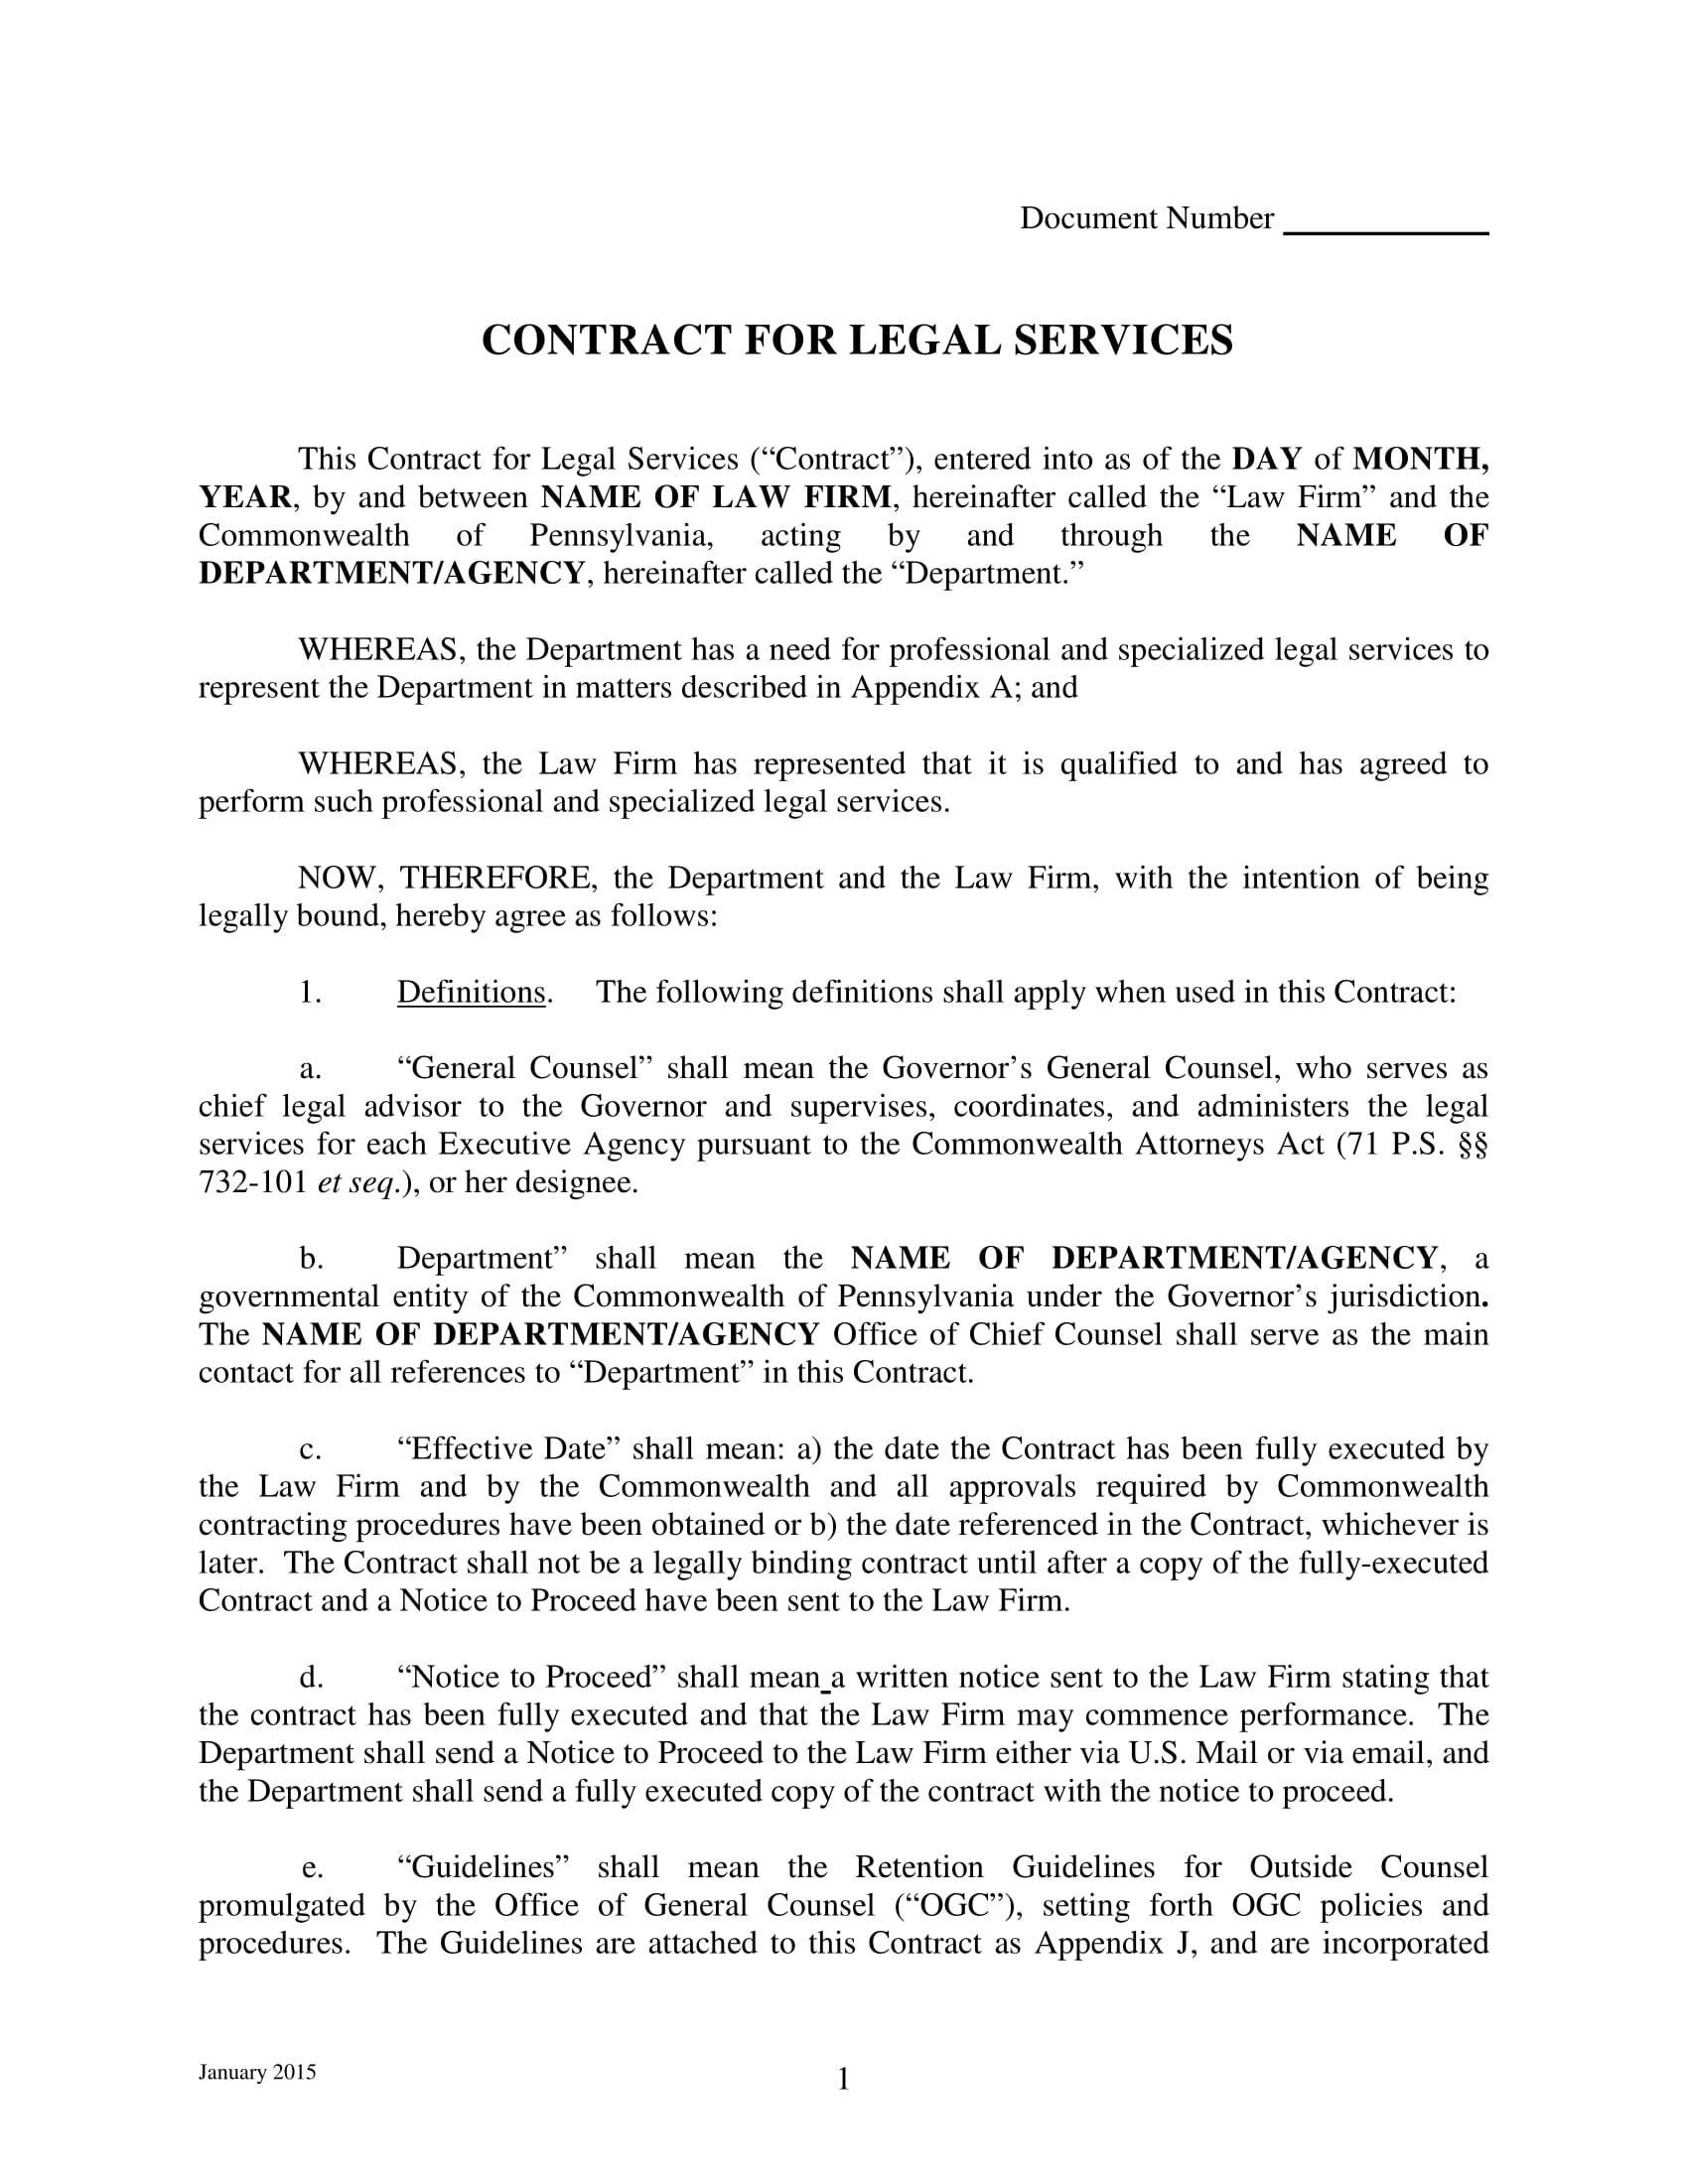 legal services contract form 01